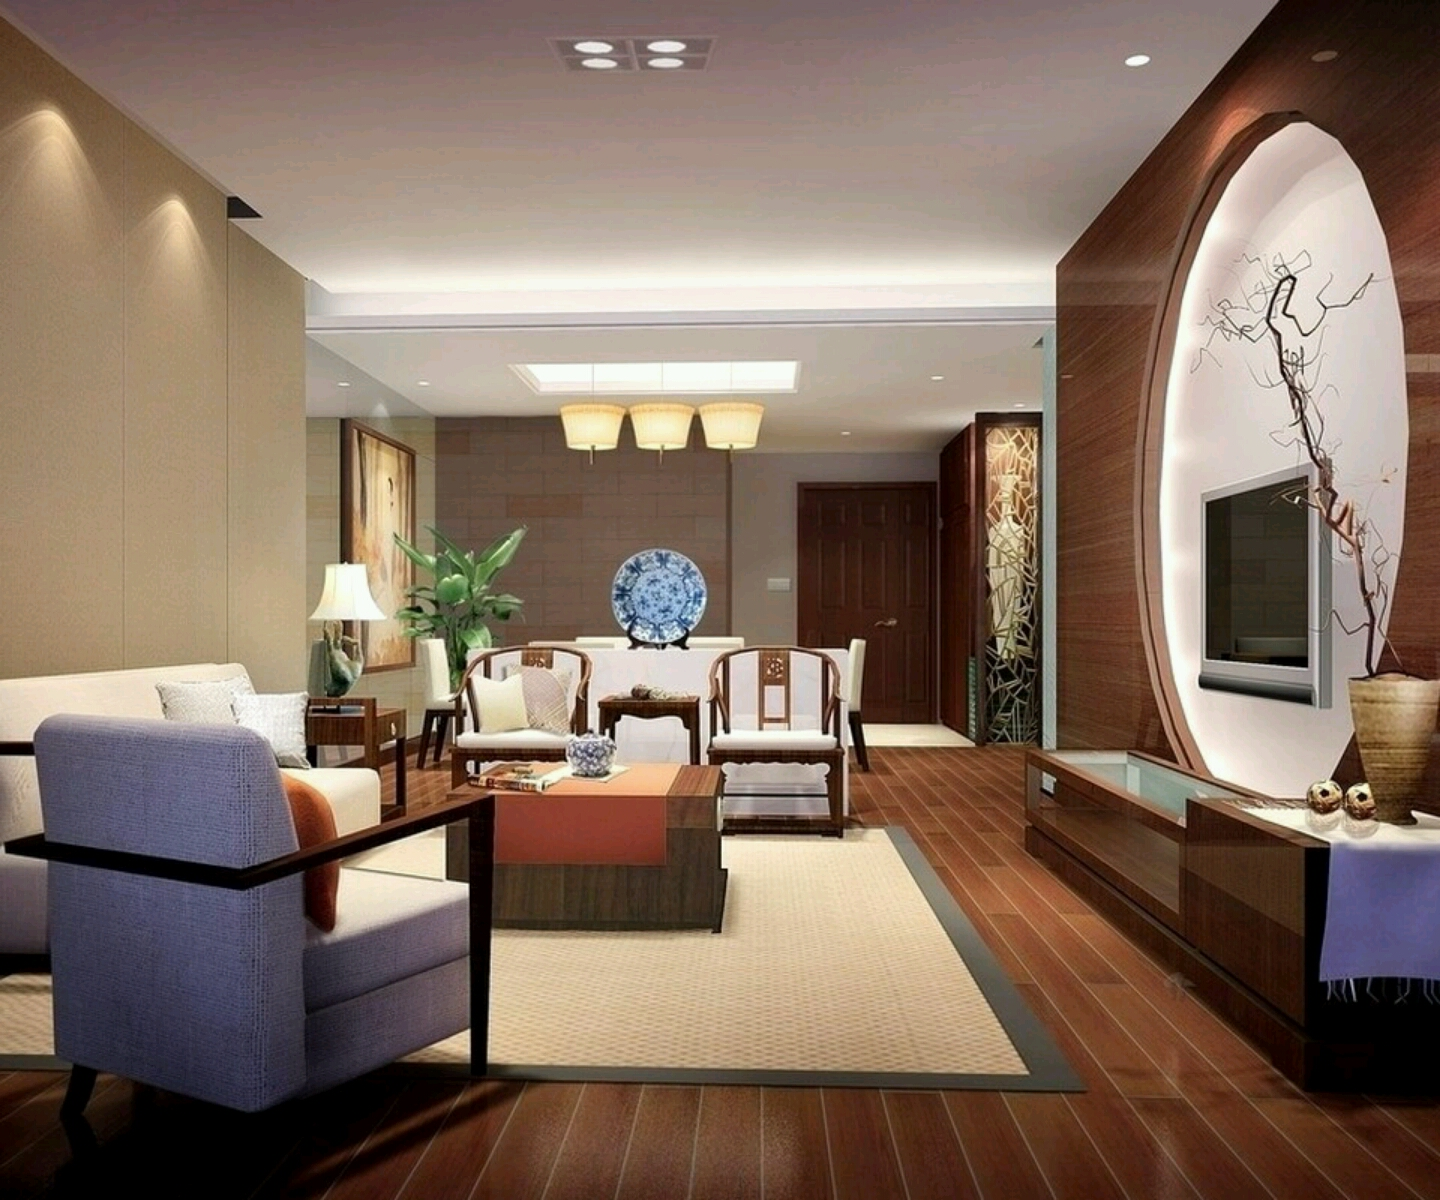 Luxury homes interior decoration living room designs ideas - Interior design styles for living room ...